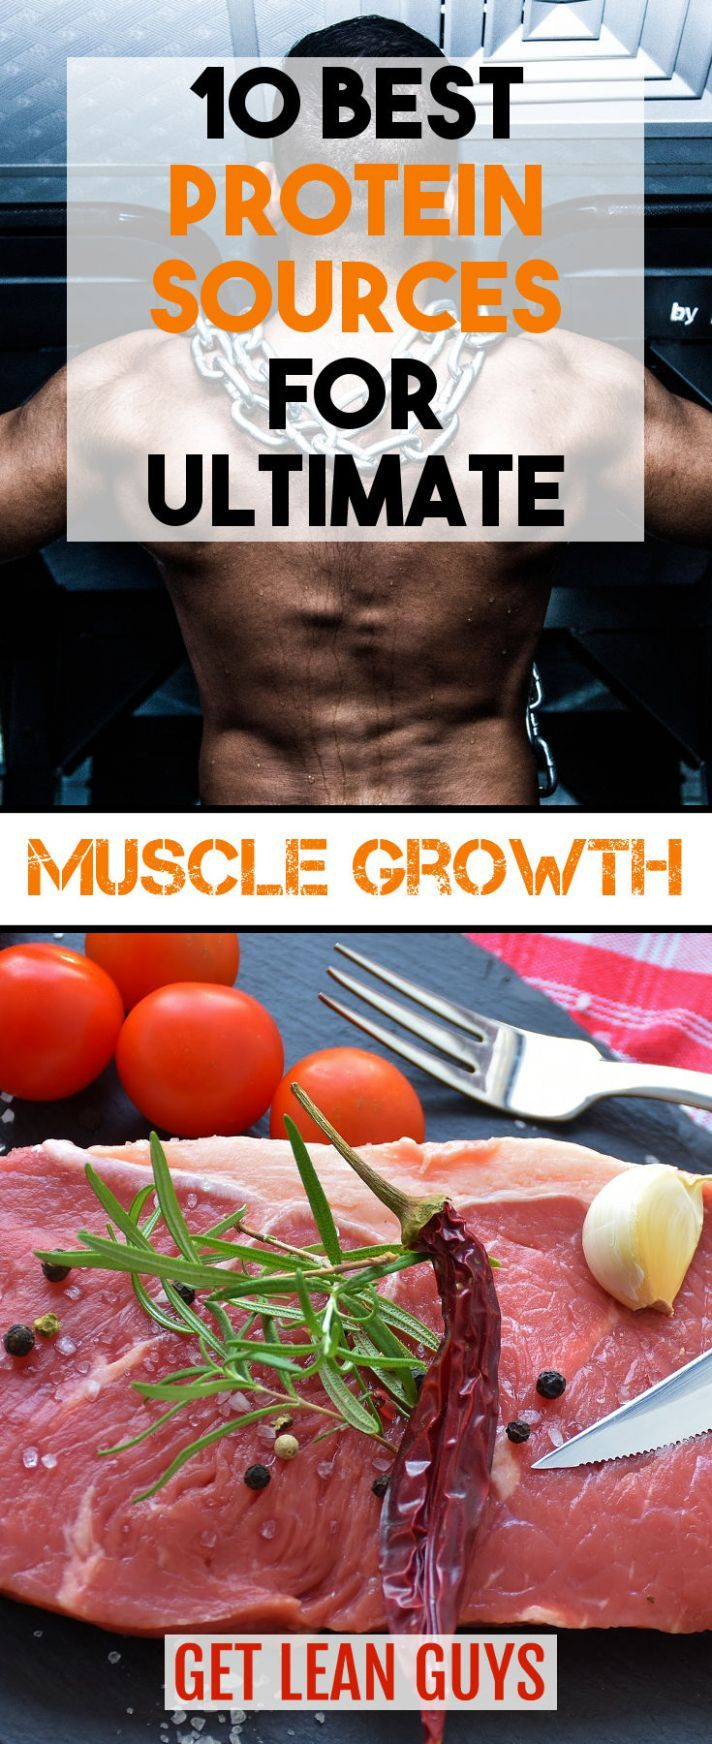 10 Best Protein Sources for Ultimate Muscle Growth Best